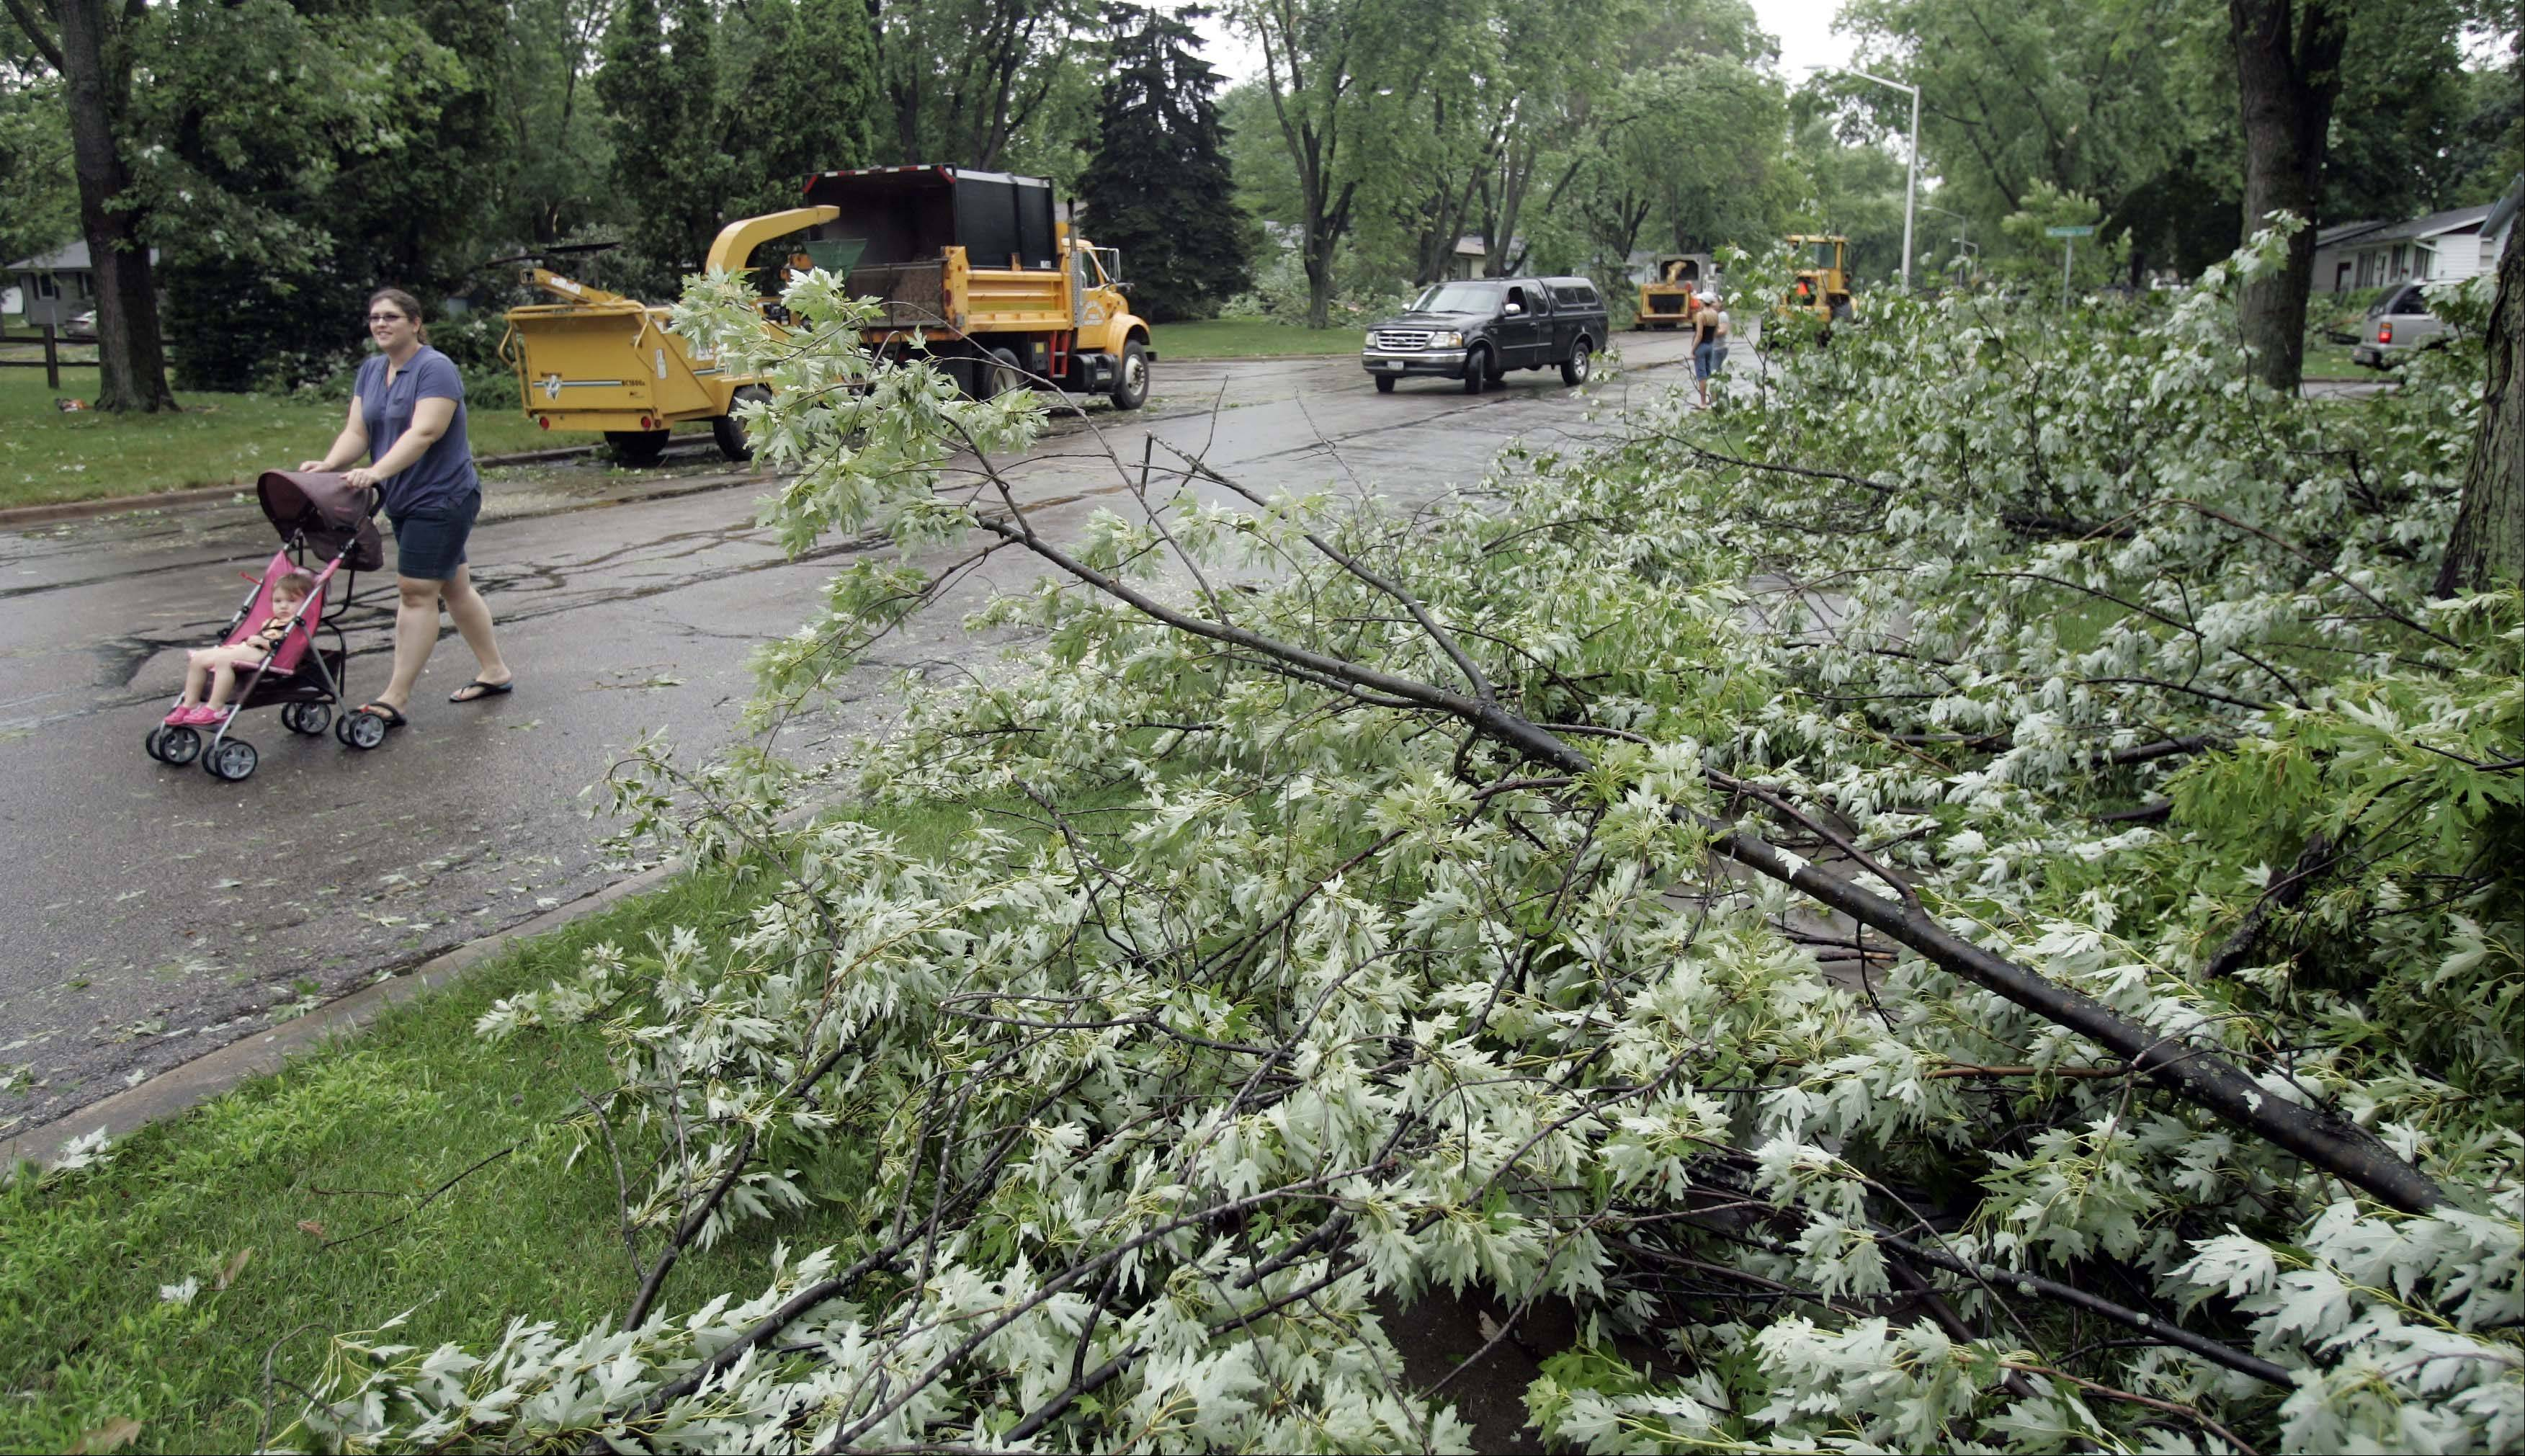 Marissa Martensen walks with her daughter Chloe, 1, past downed trees on Thunderbird Trail in Carol Stream Thursday.